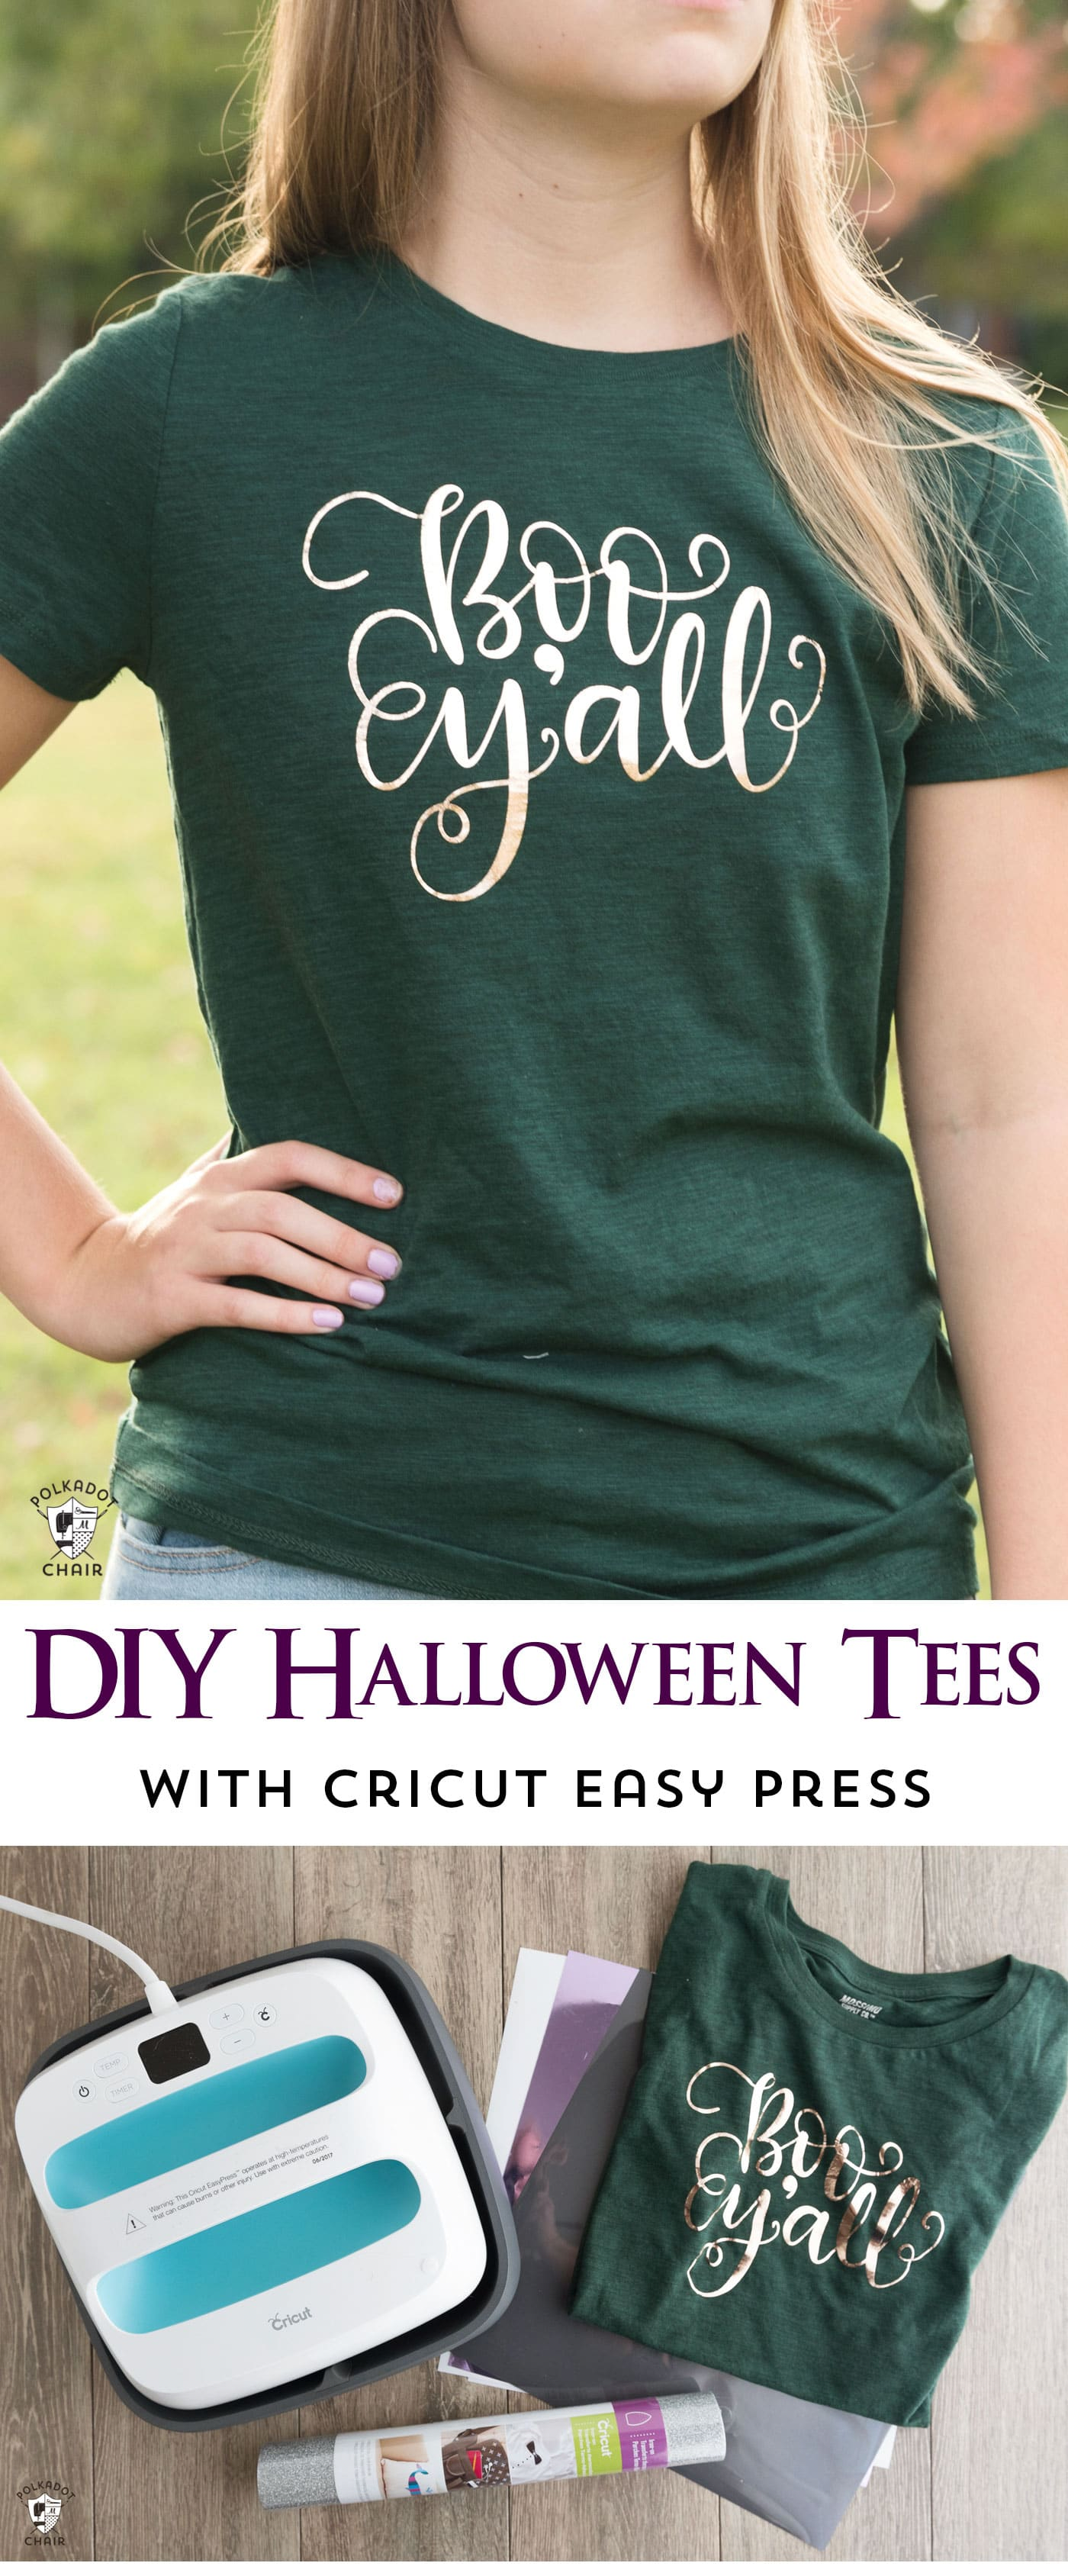 How to make cute Halloween t-shirts with iron ons and a review of the new Cricut EasyPress machine. Includes free cut files inspired by Disney's Haunted Mansion themed t-shirts for Halloween